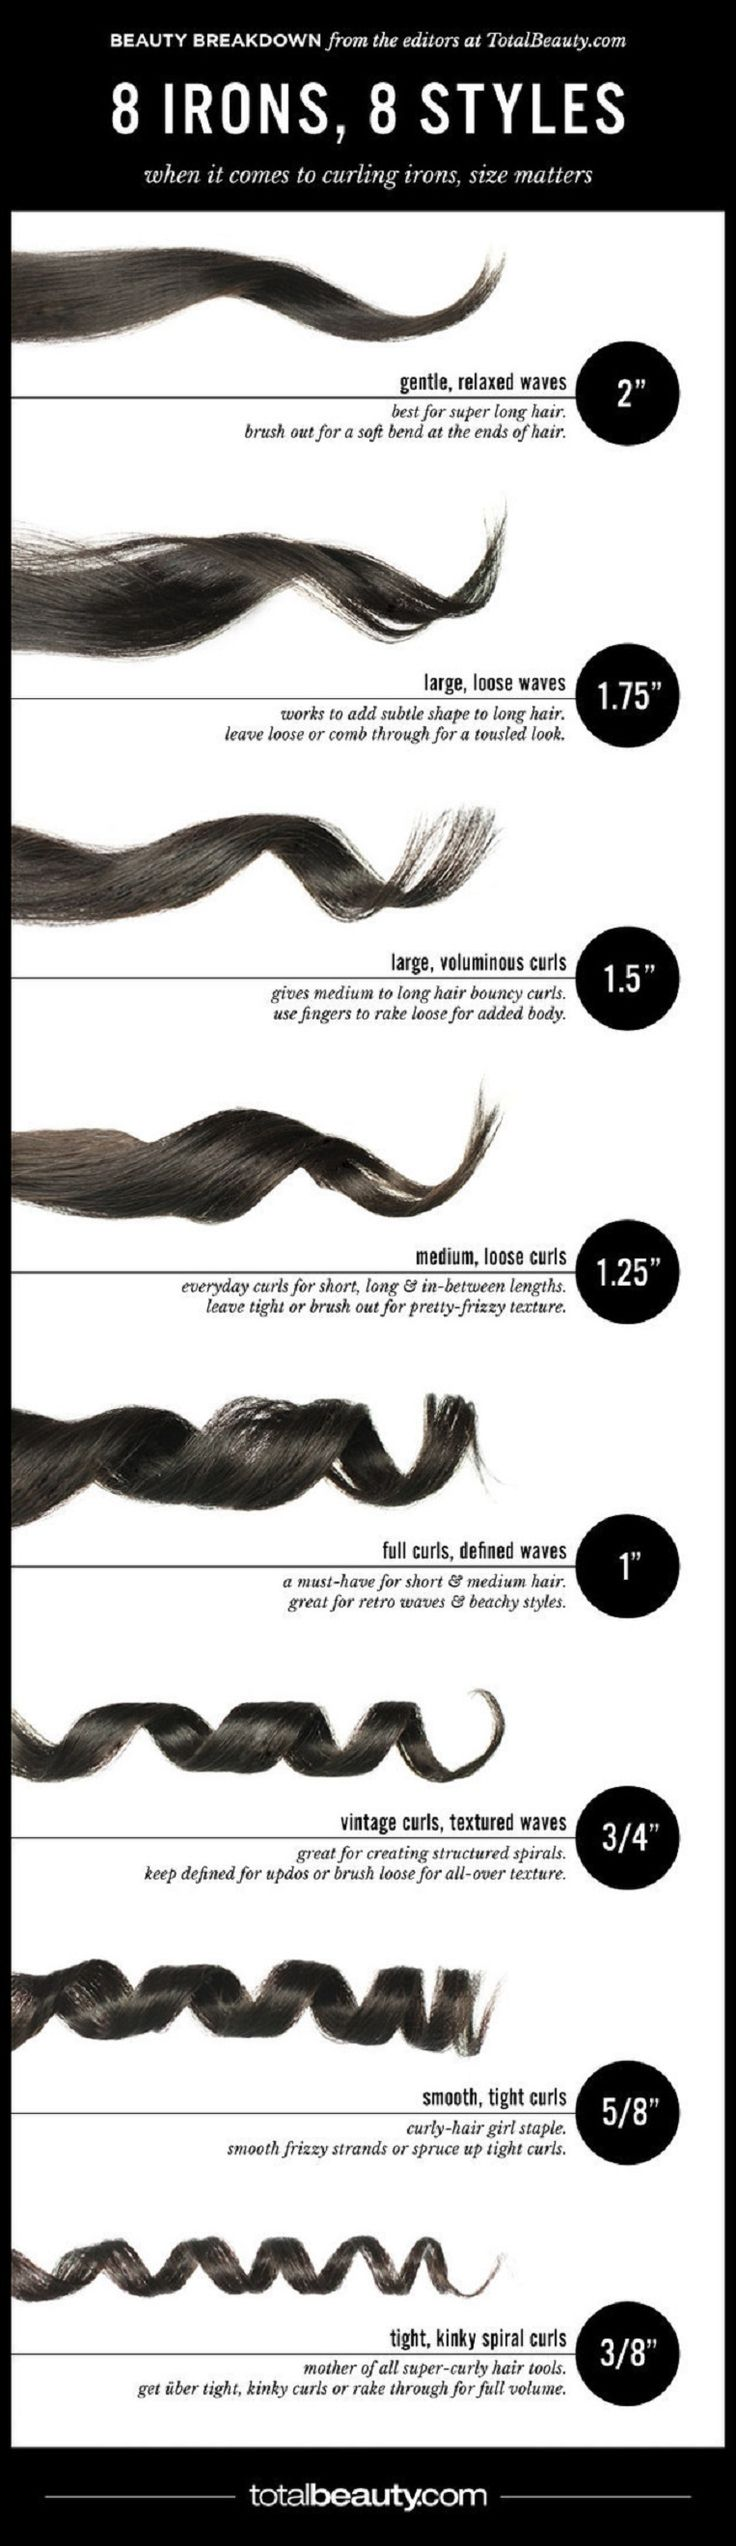 Choose the right size of curling iron